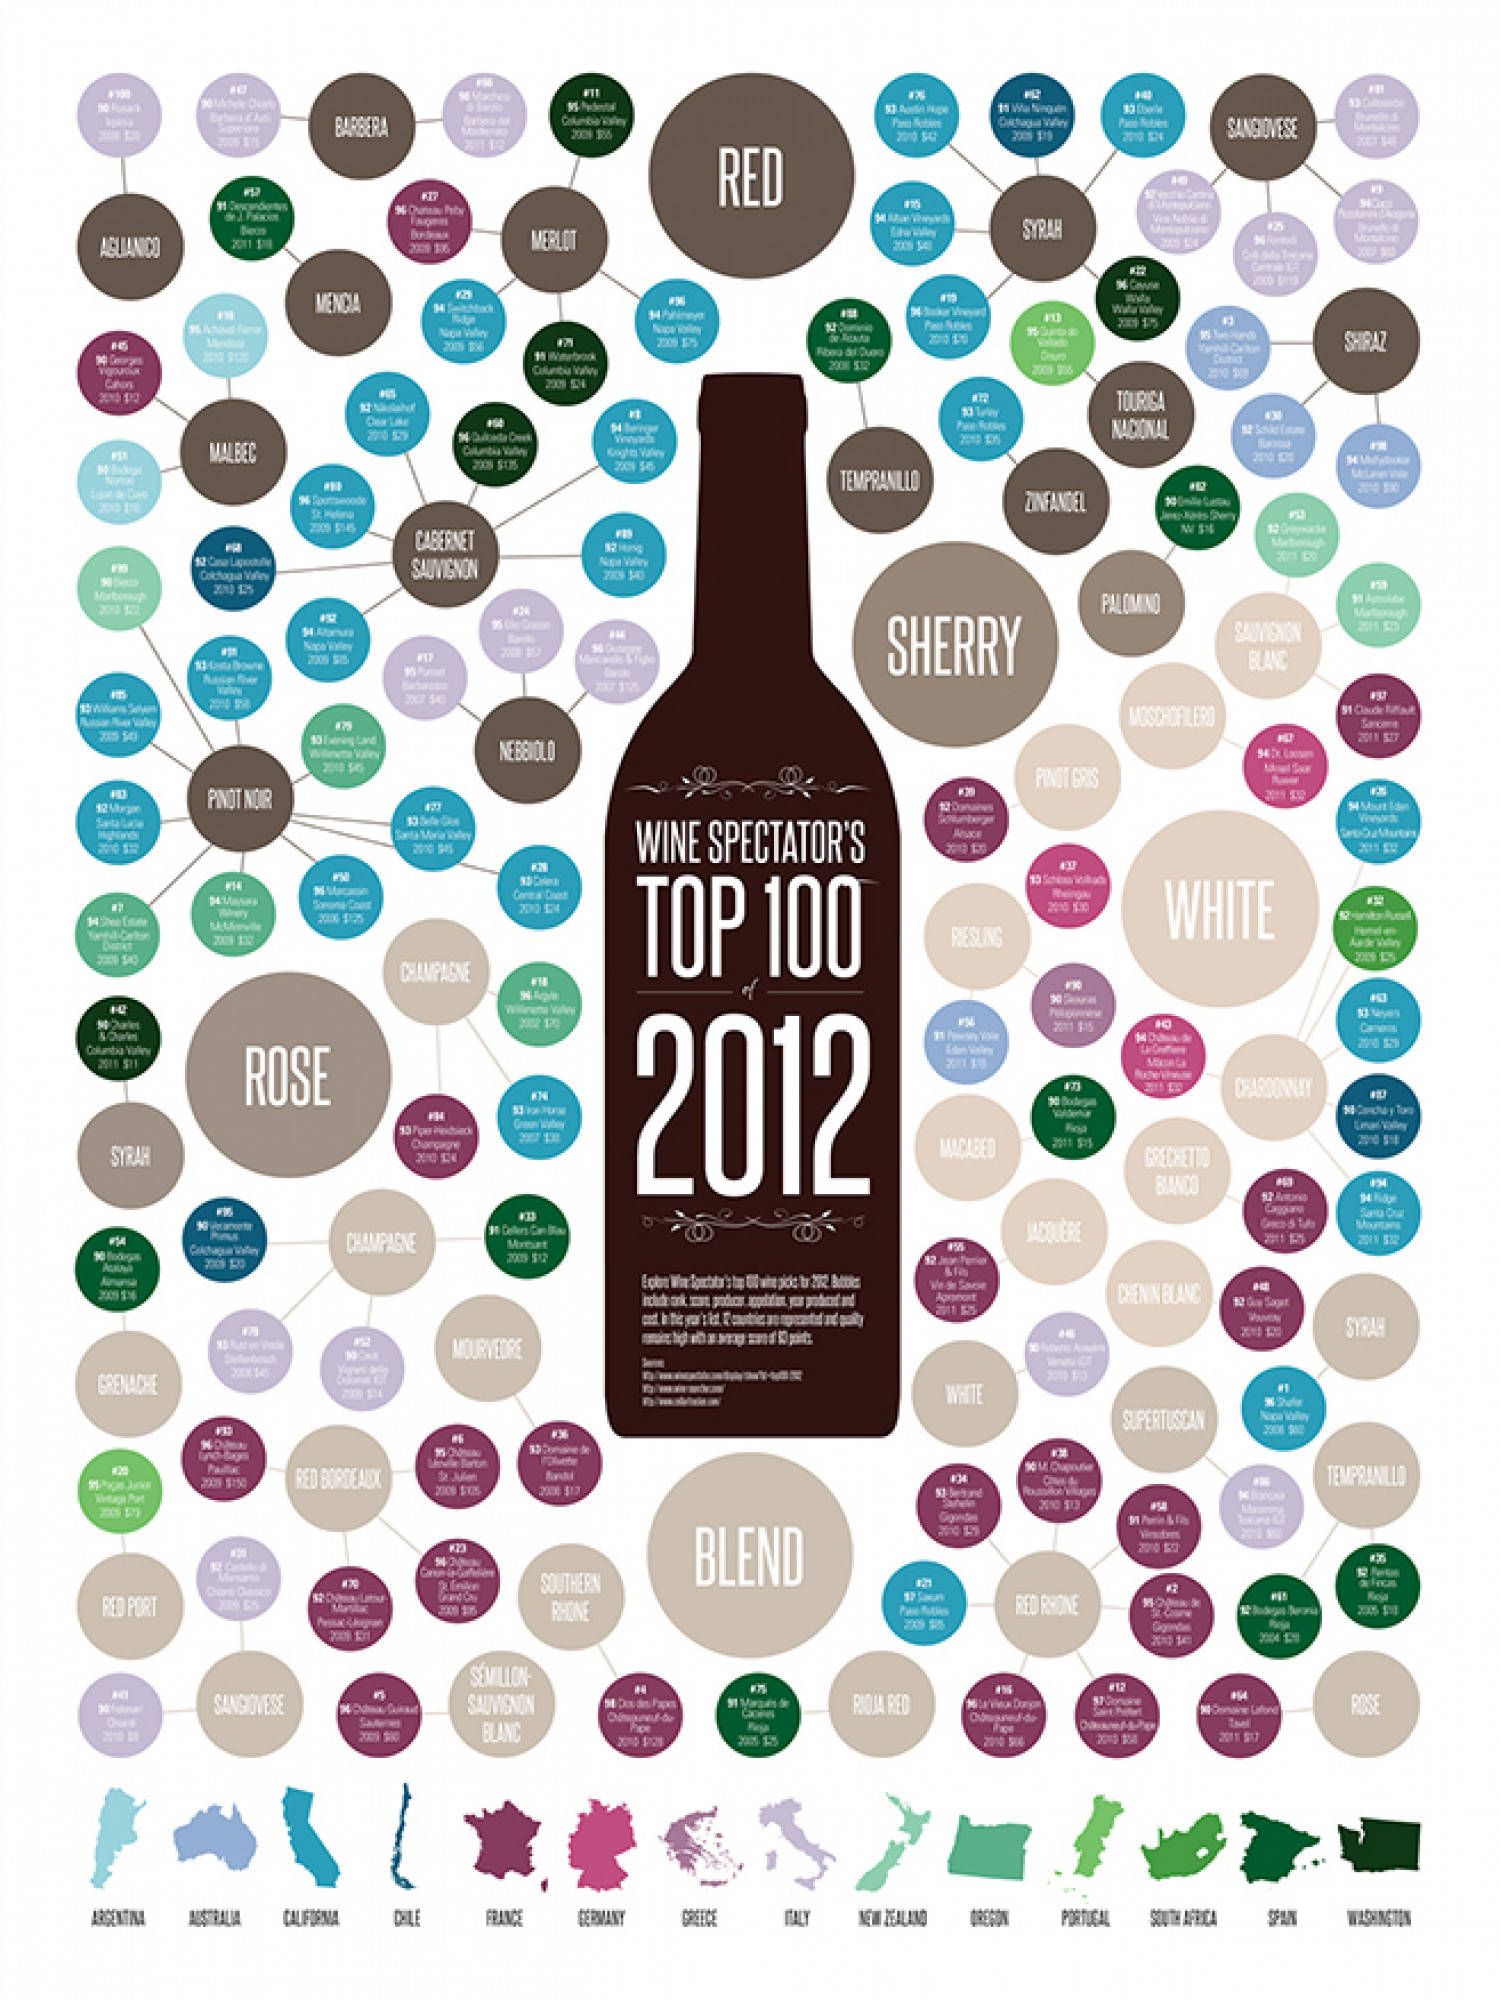 Wine Spectator's Top 100 of 2012 Infographic